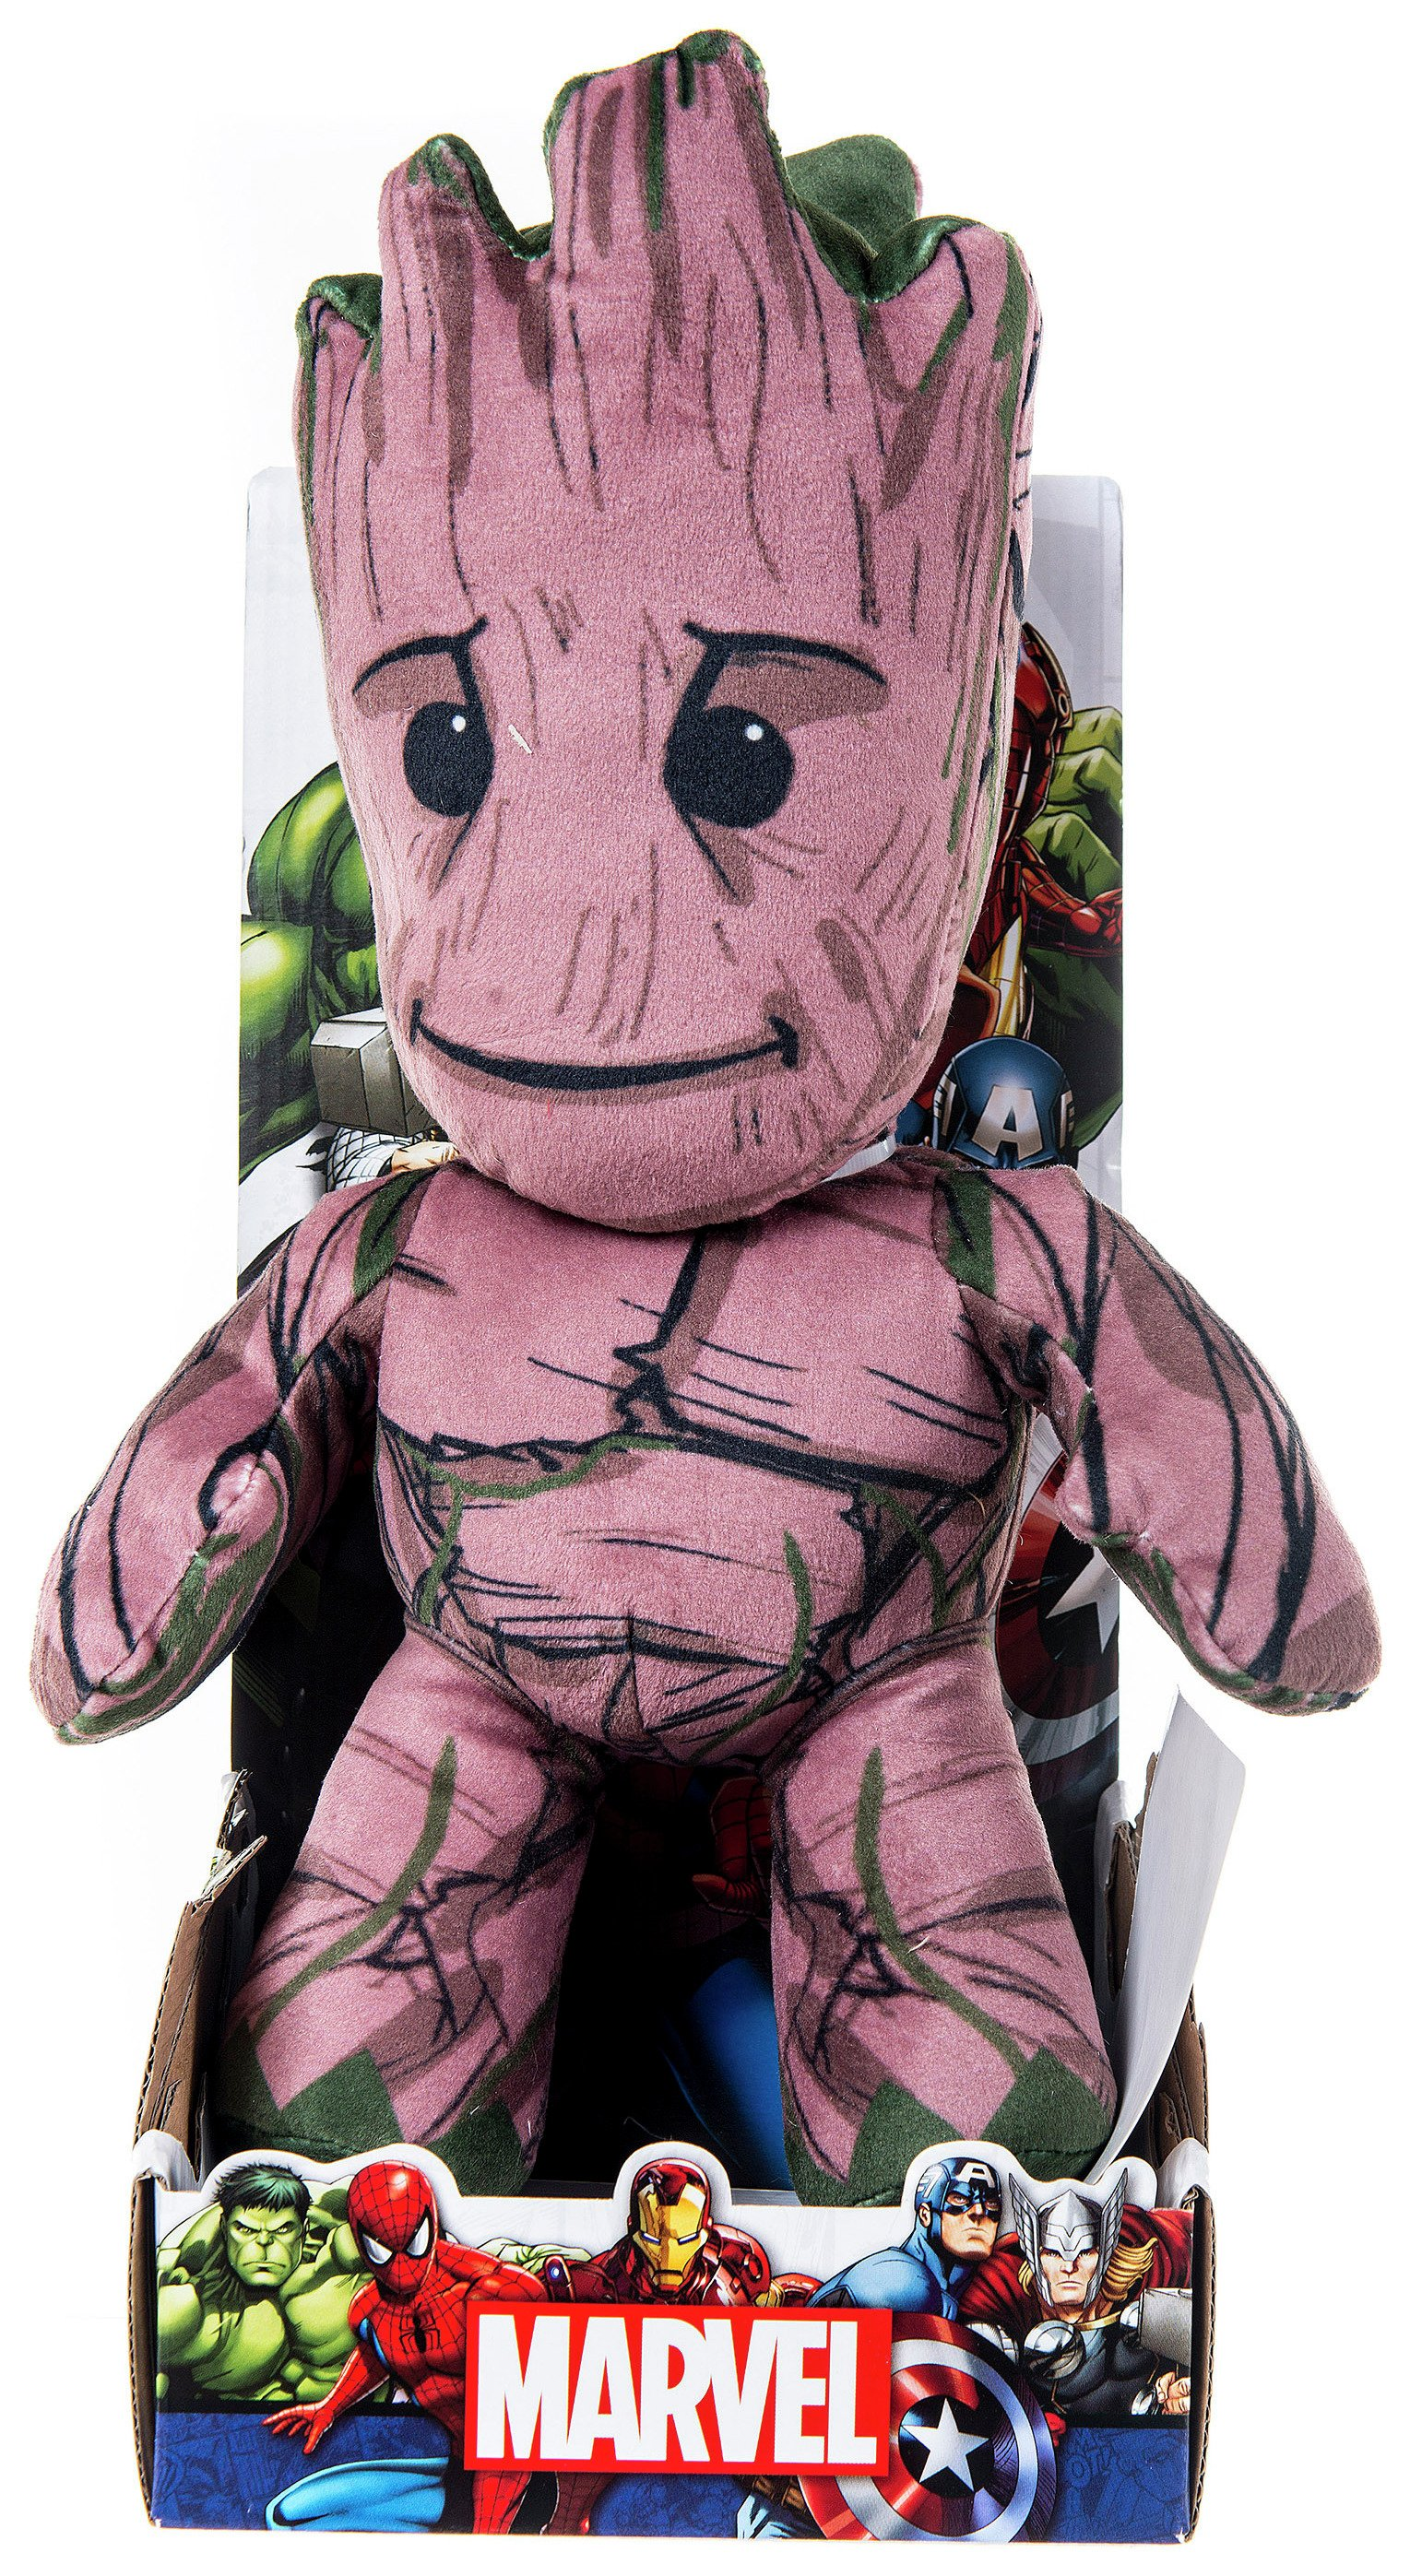 Marvel Guardians of the Galaxy Groot 10 Inch Plush.